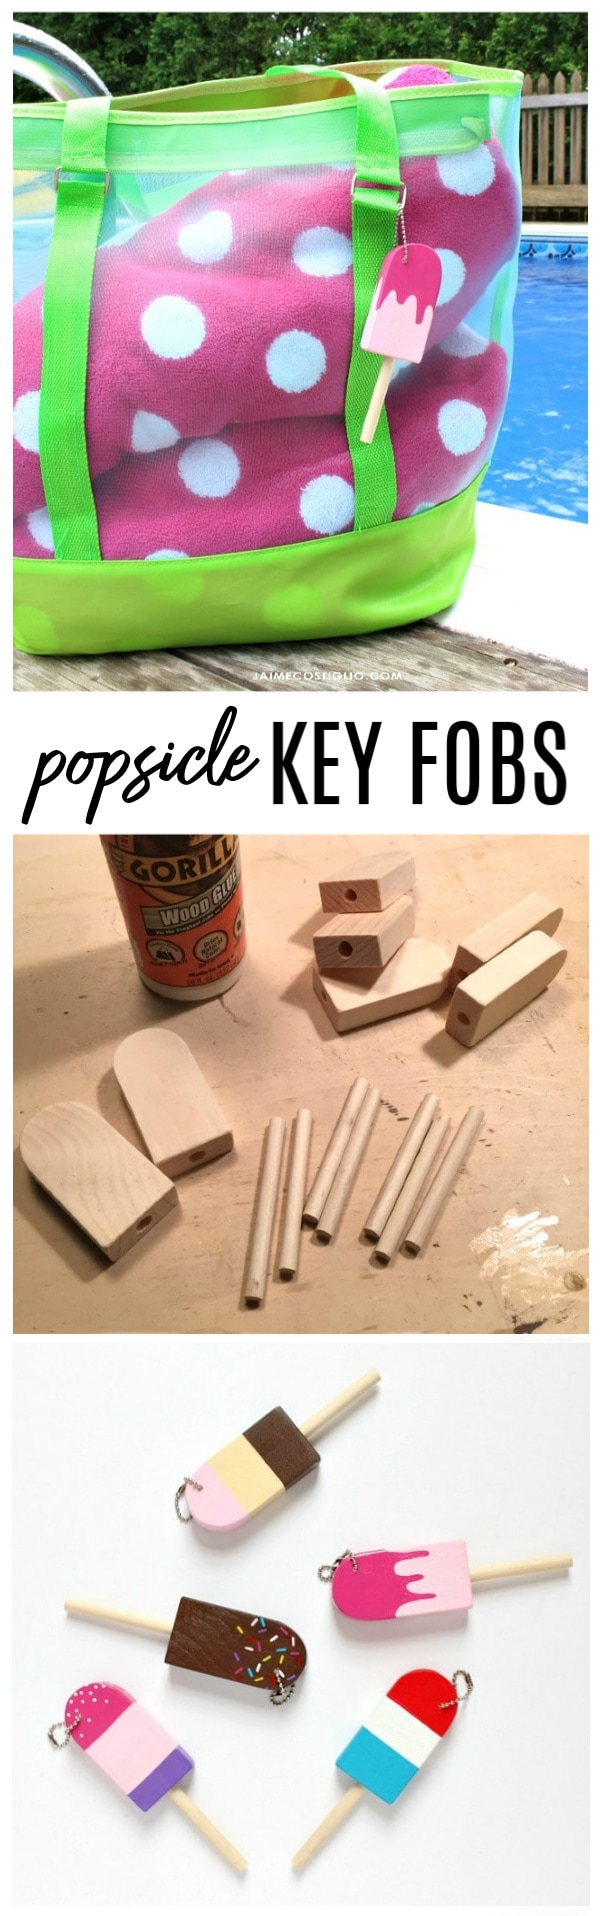 diy popsicle key fobs